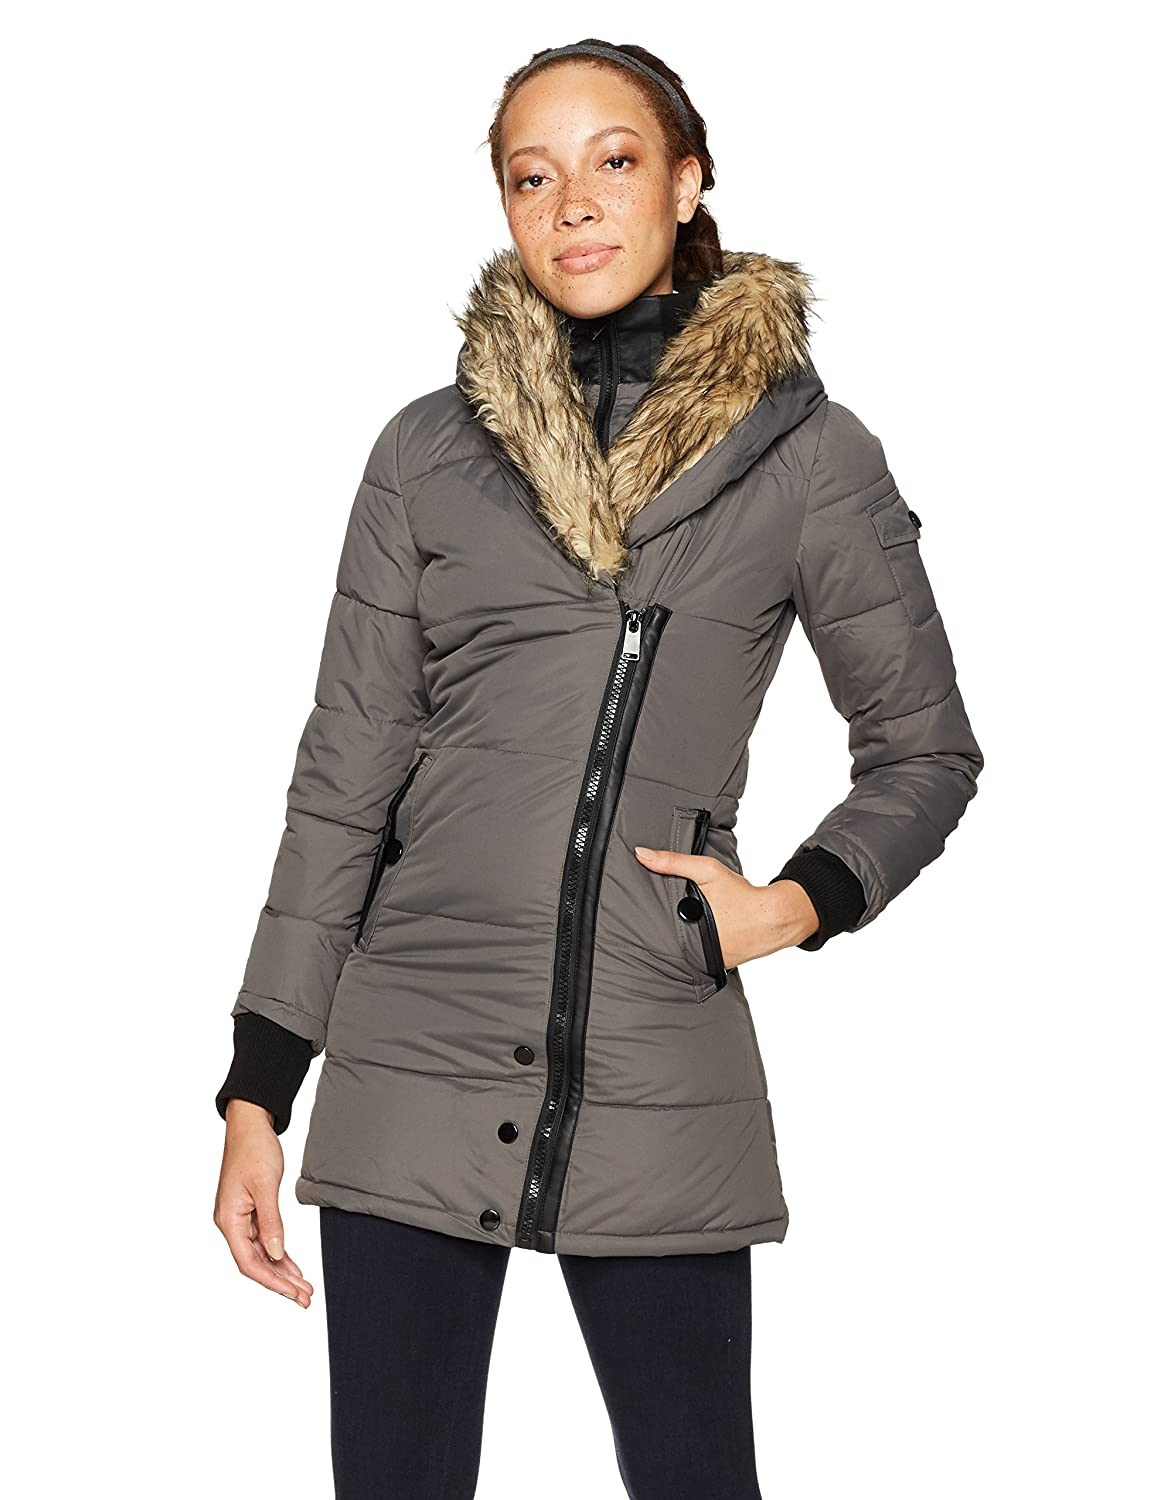 Celsius OUTERWEAR レディース B073WCQG4D Small|スチール スチール Small